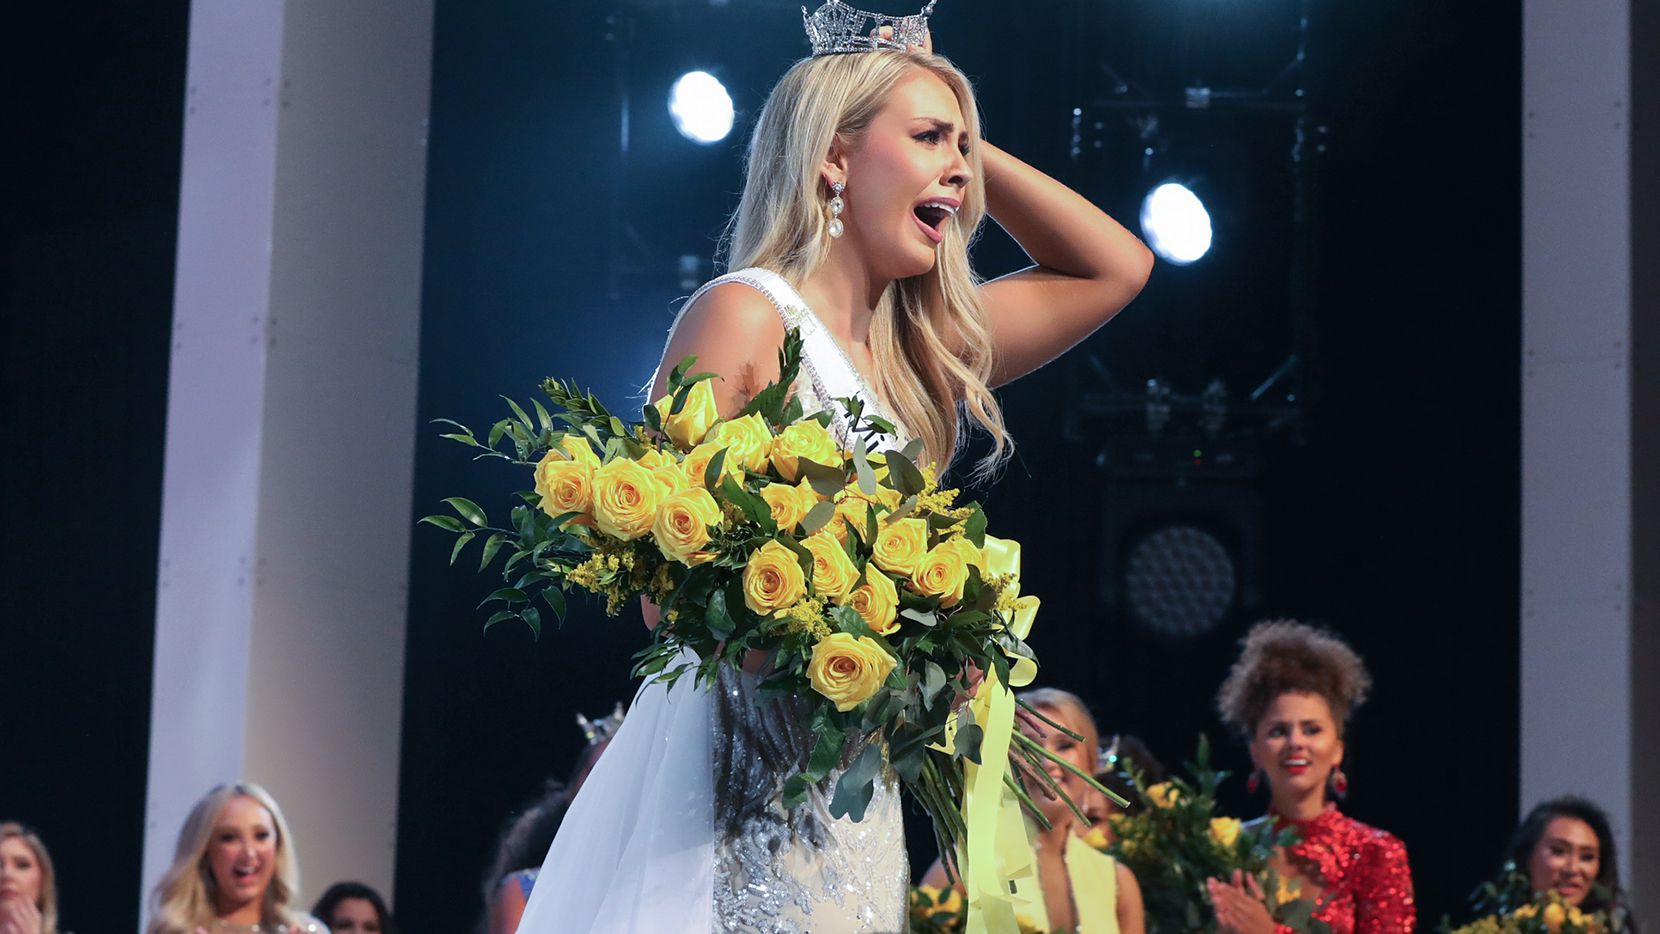 Miss Colleyville Mallory Fuller is the new Miss Texas 2021.